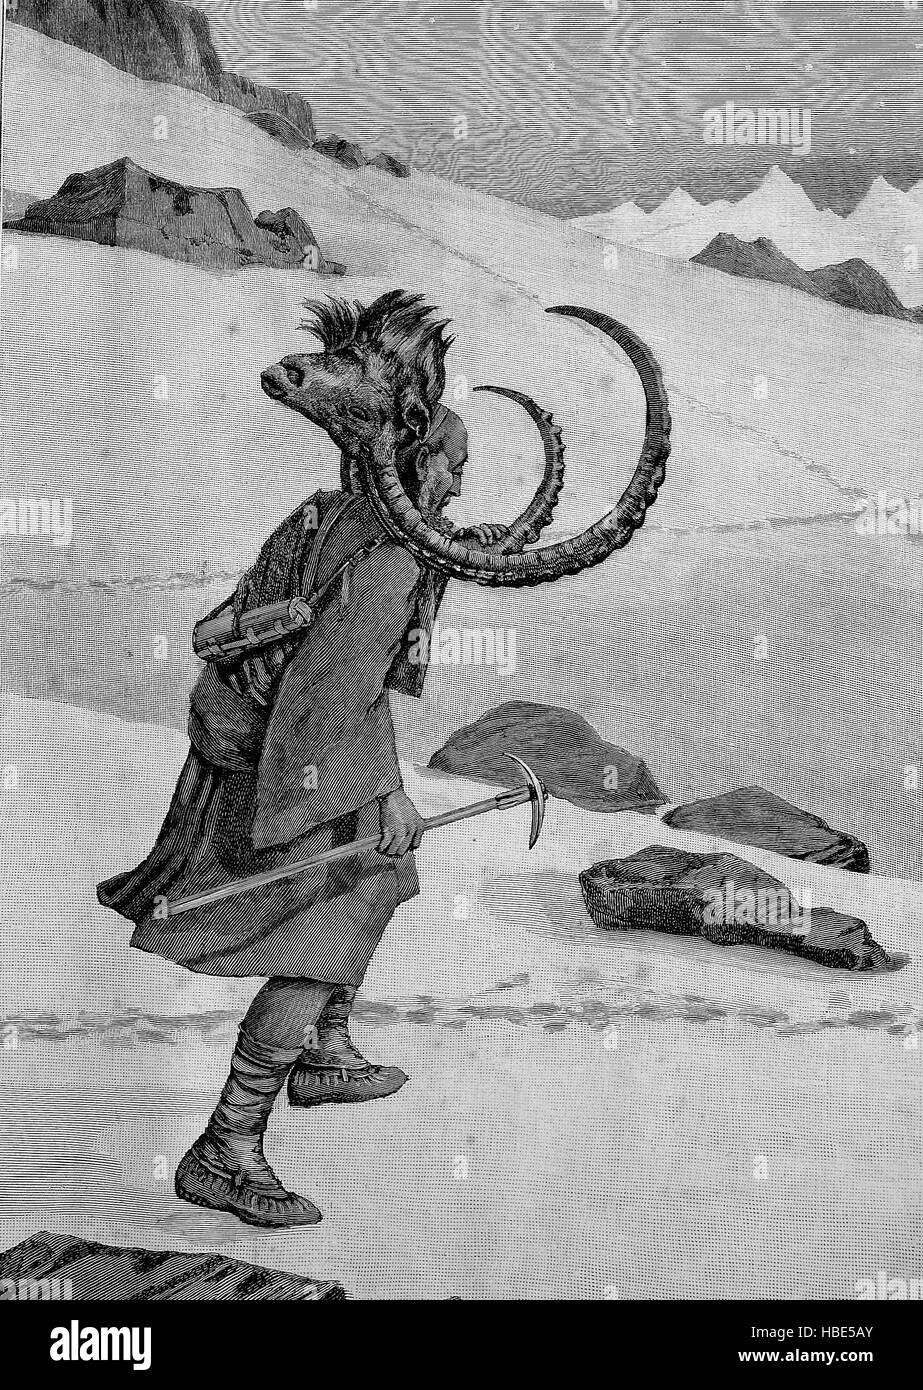 India, Capricorn hunting, homecoming with the cut off head of a Capricorn, illustration, woodcut from 1880 - Stock Image